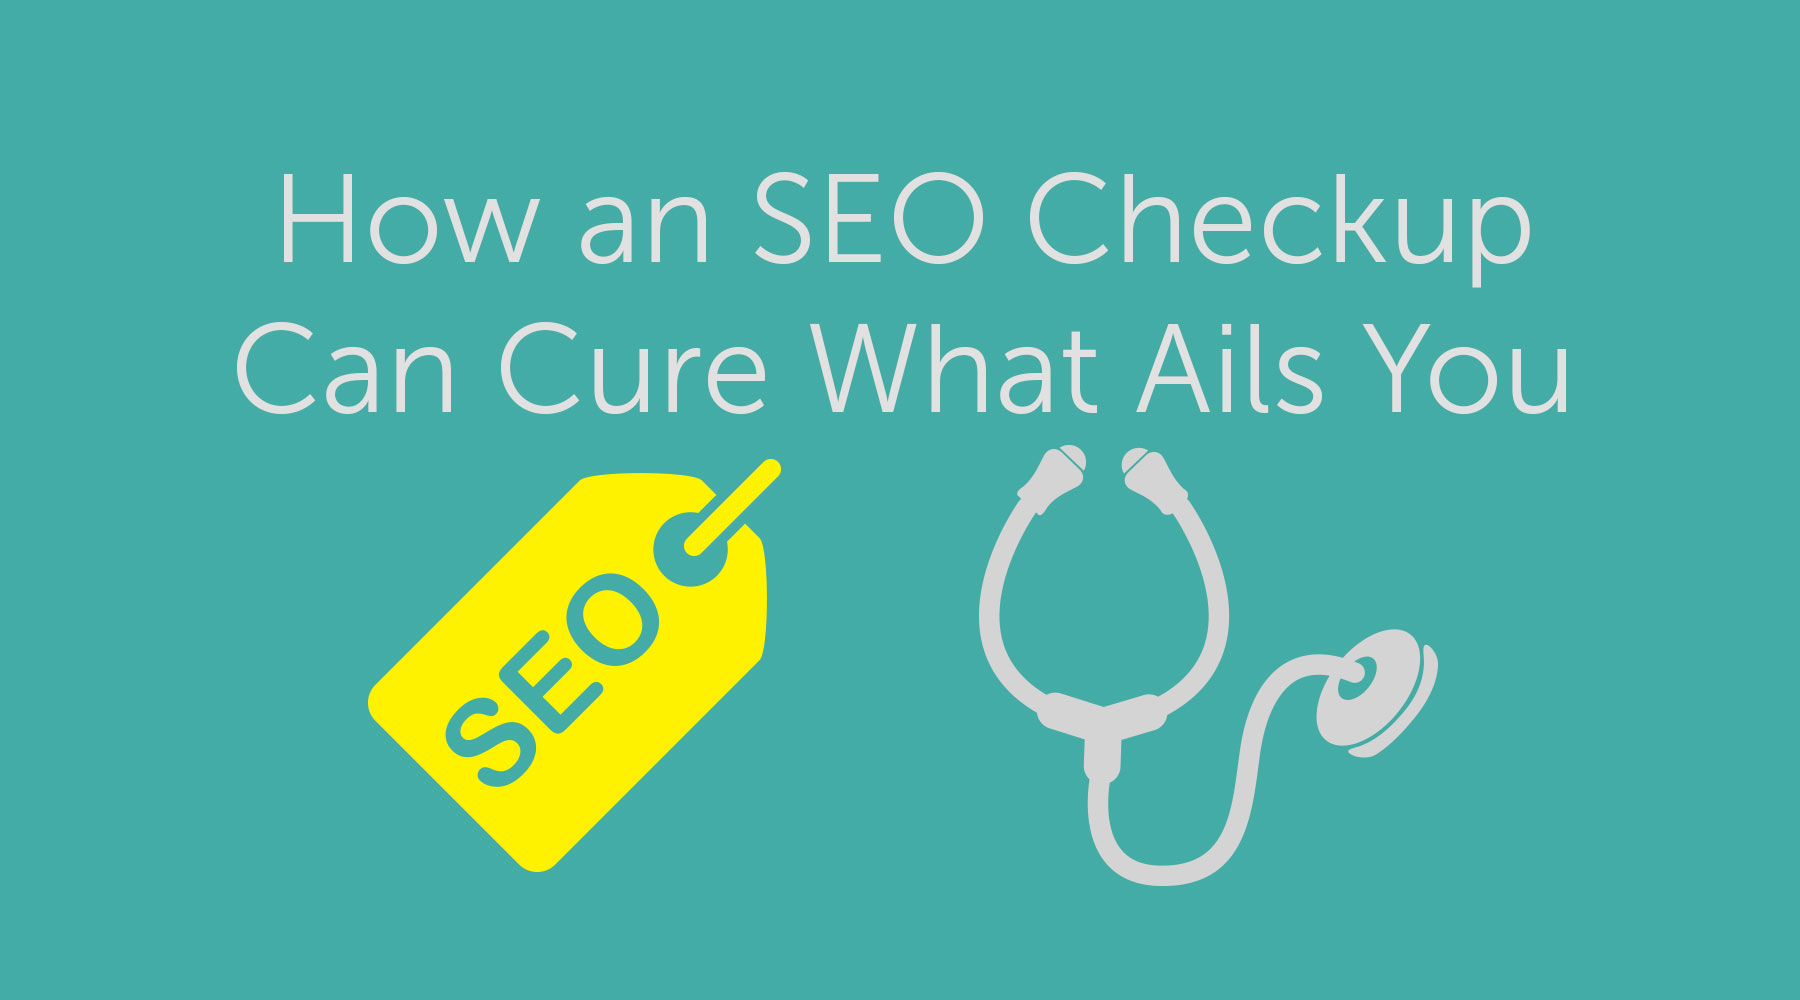 How an SEO Checkup Can Cure What Ails You